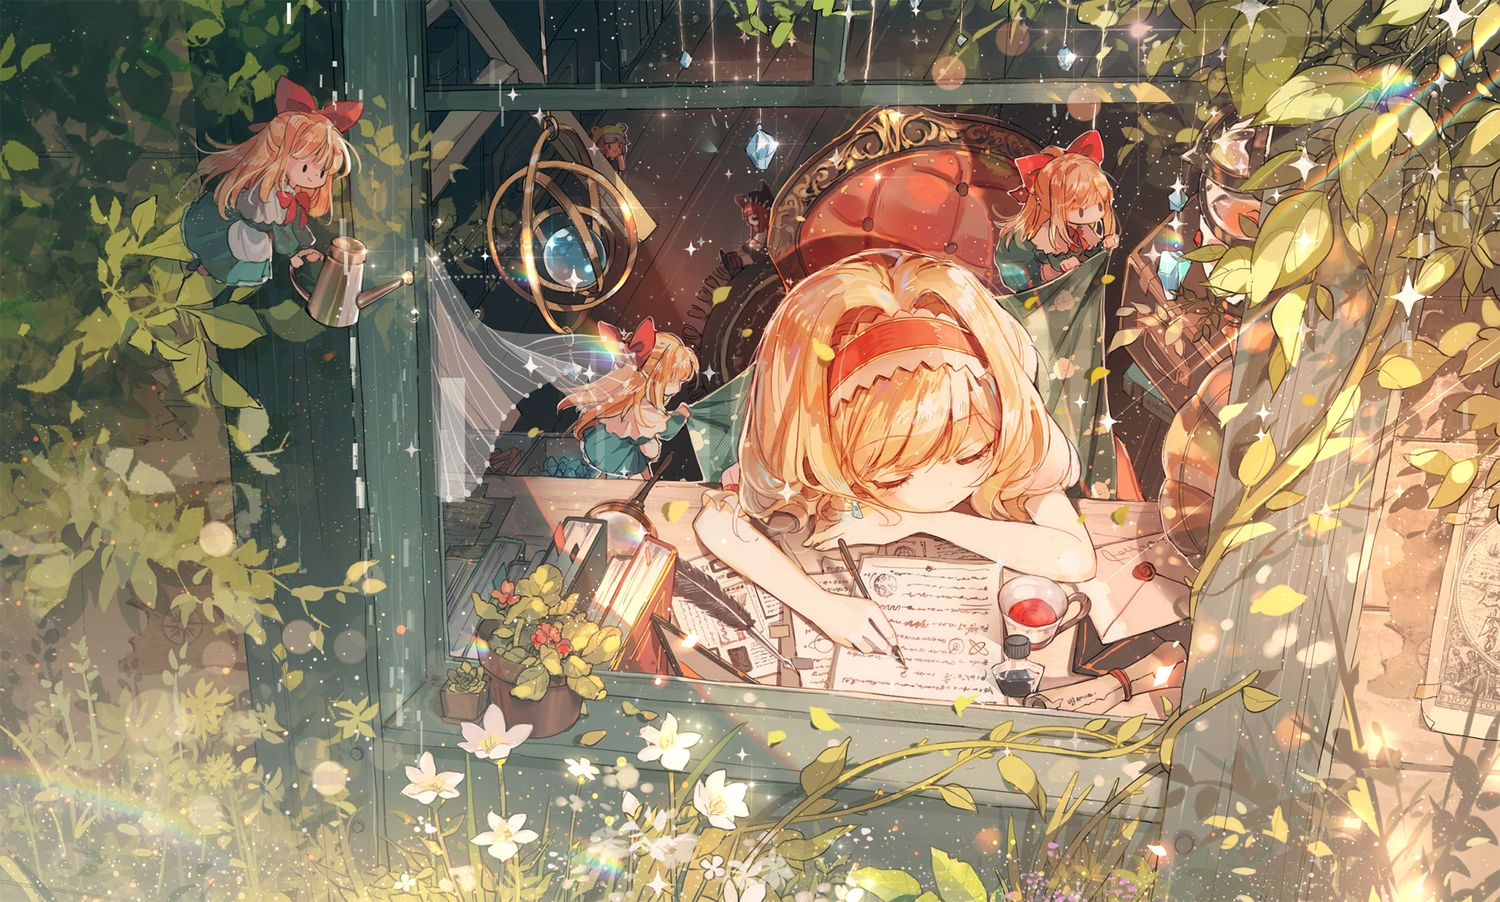 alice_margatroid blonde_hair book drink feathers flowers headband paper rokusai shanghai_doll sleeping touhou